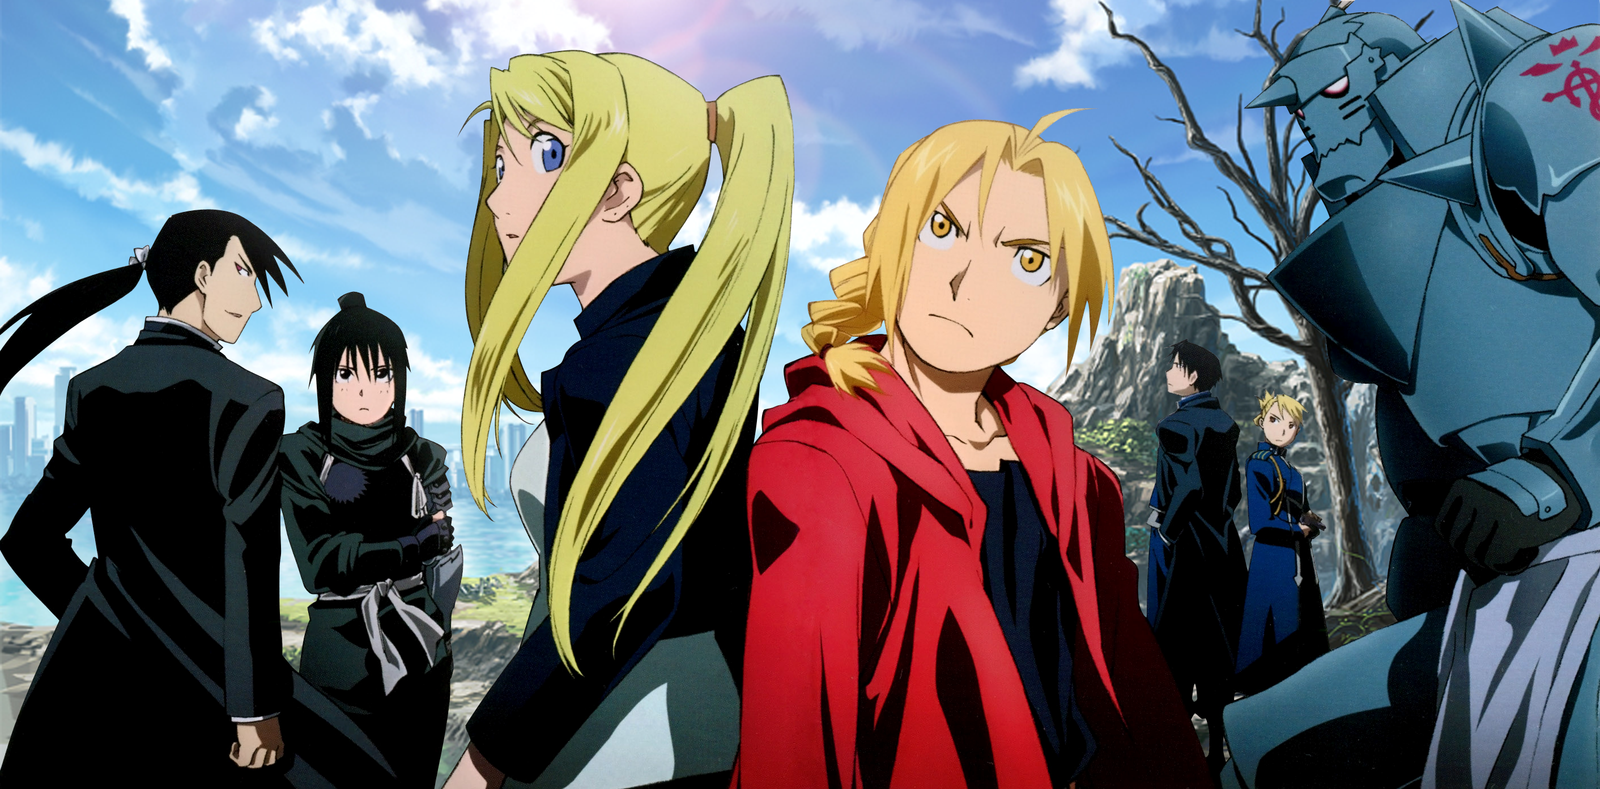 fullmetal alchemist brotherhood wallpapers high quality